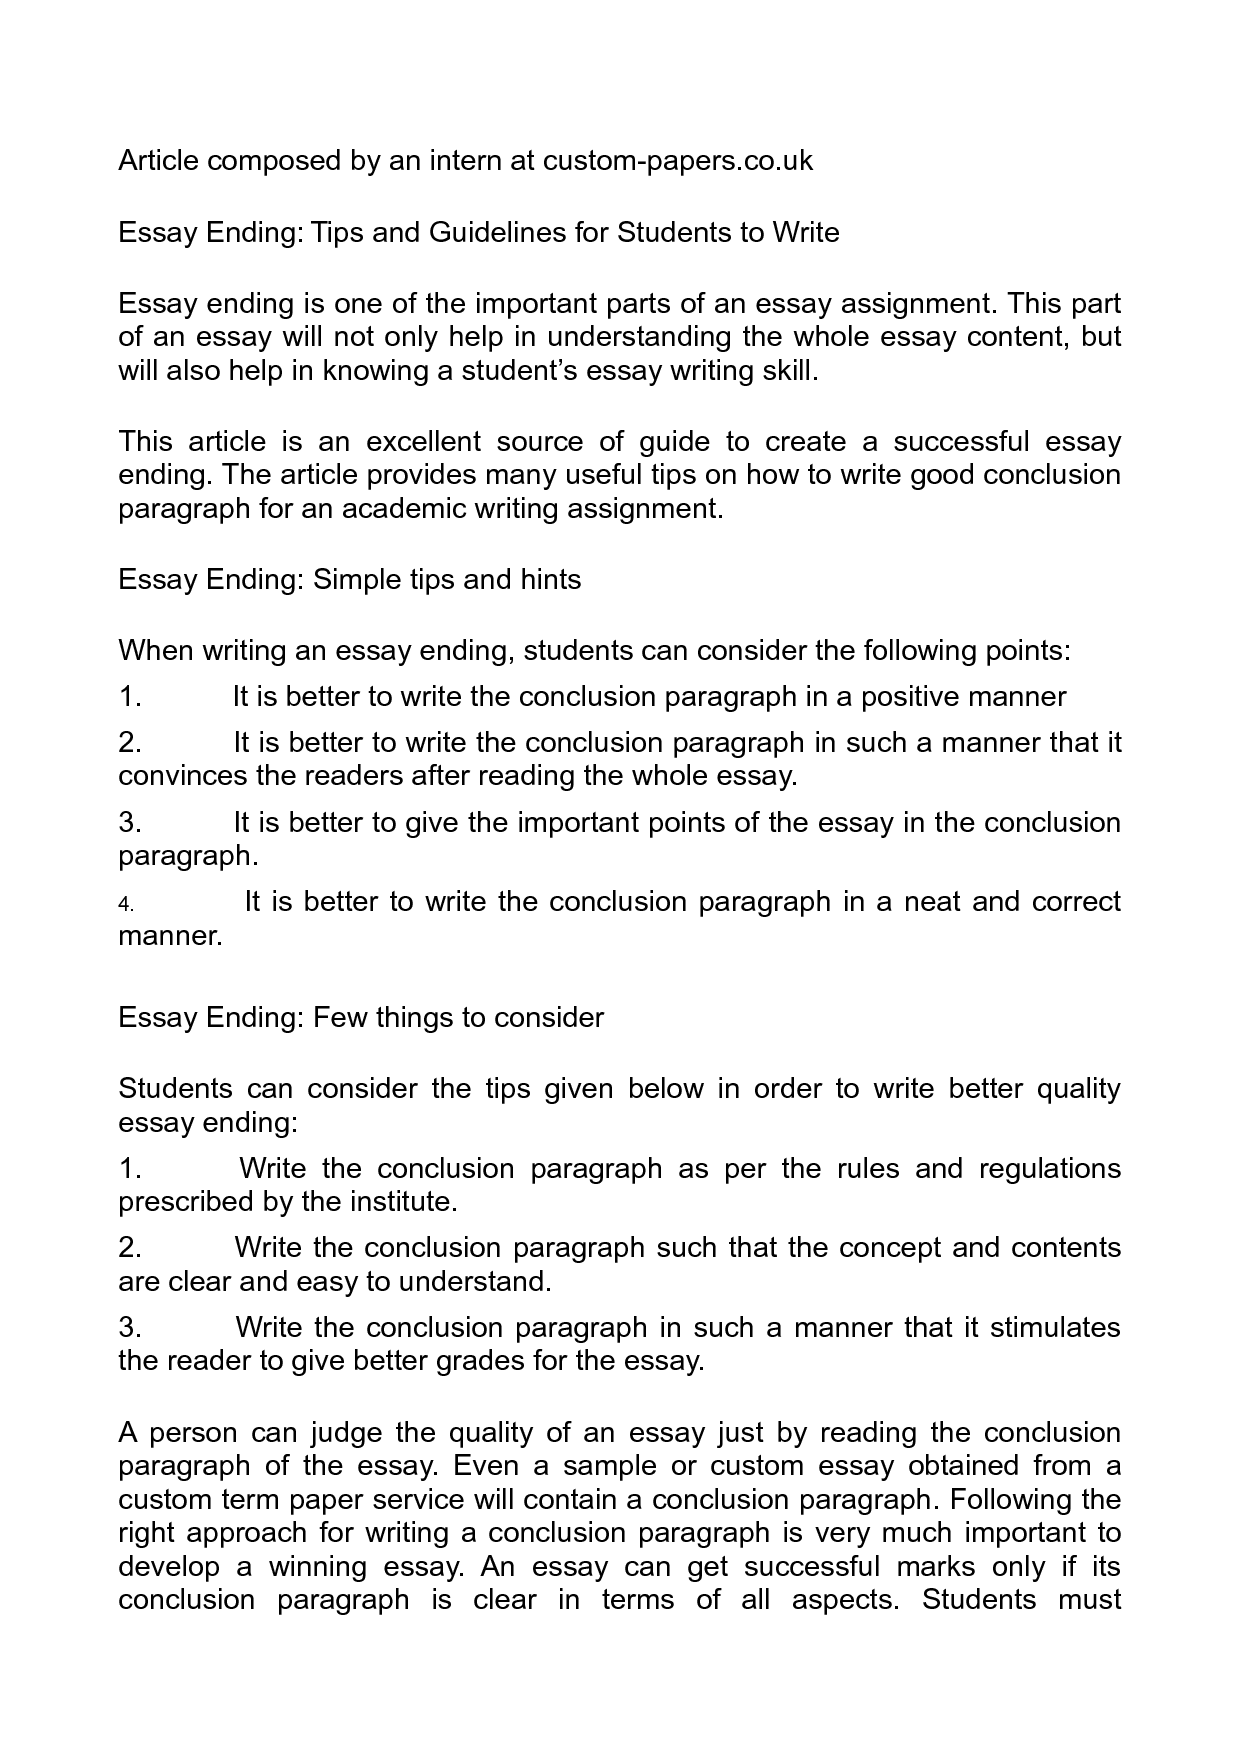 001 Pzwnxlang9 Ending An Essay Excellent Ways To End Expository With A Rhetorical Question Full